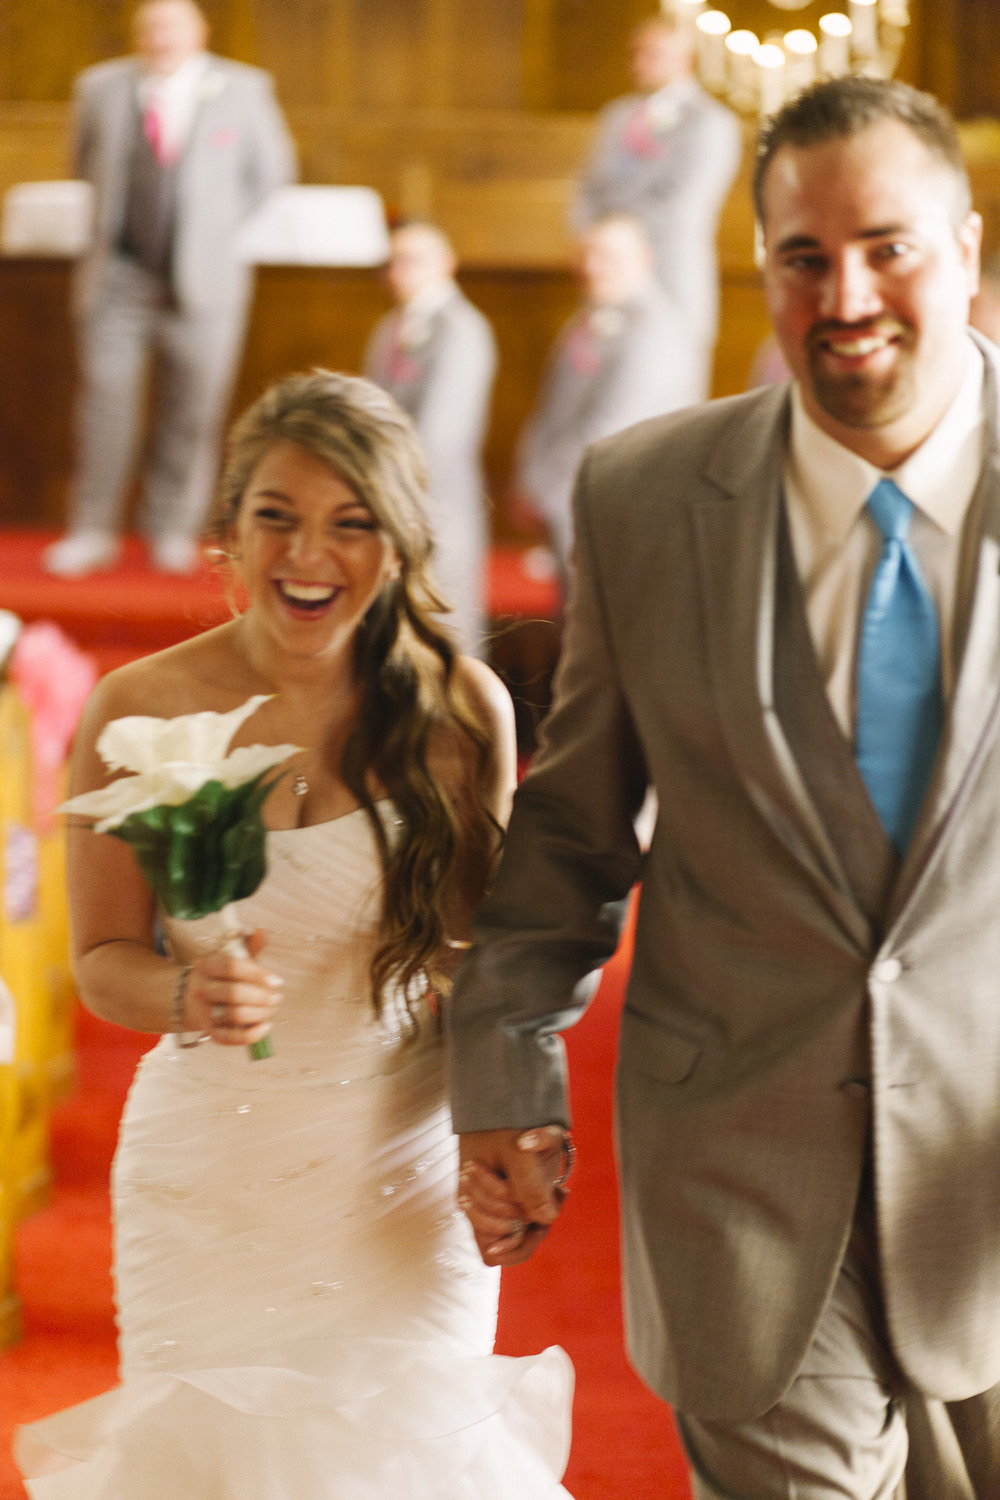 marriage-walking-down-aisle.jpg